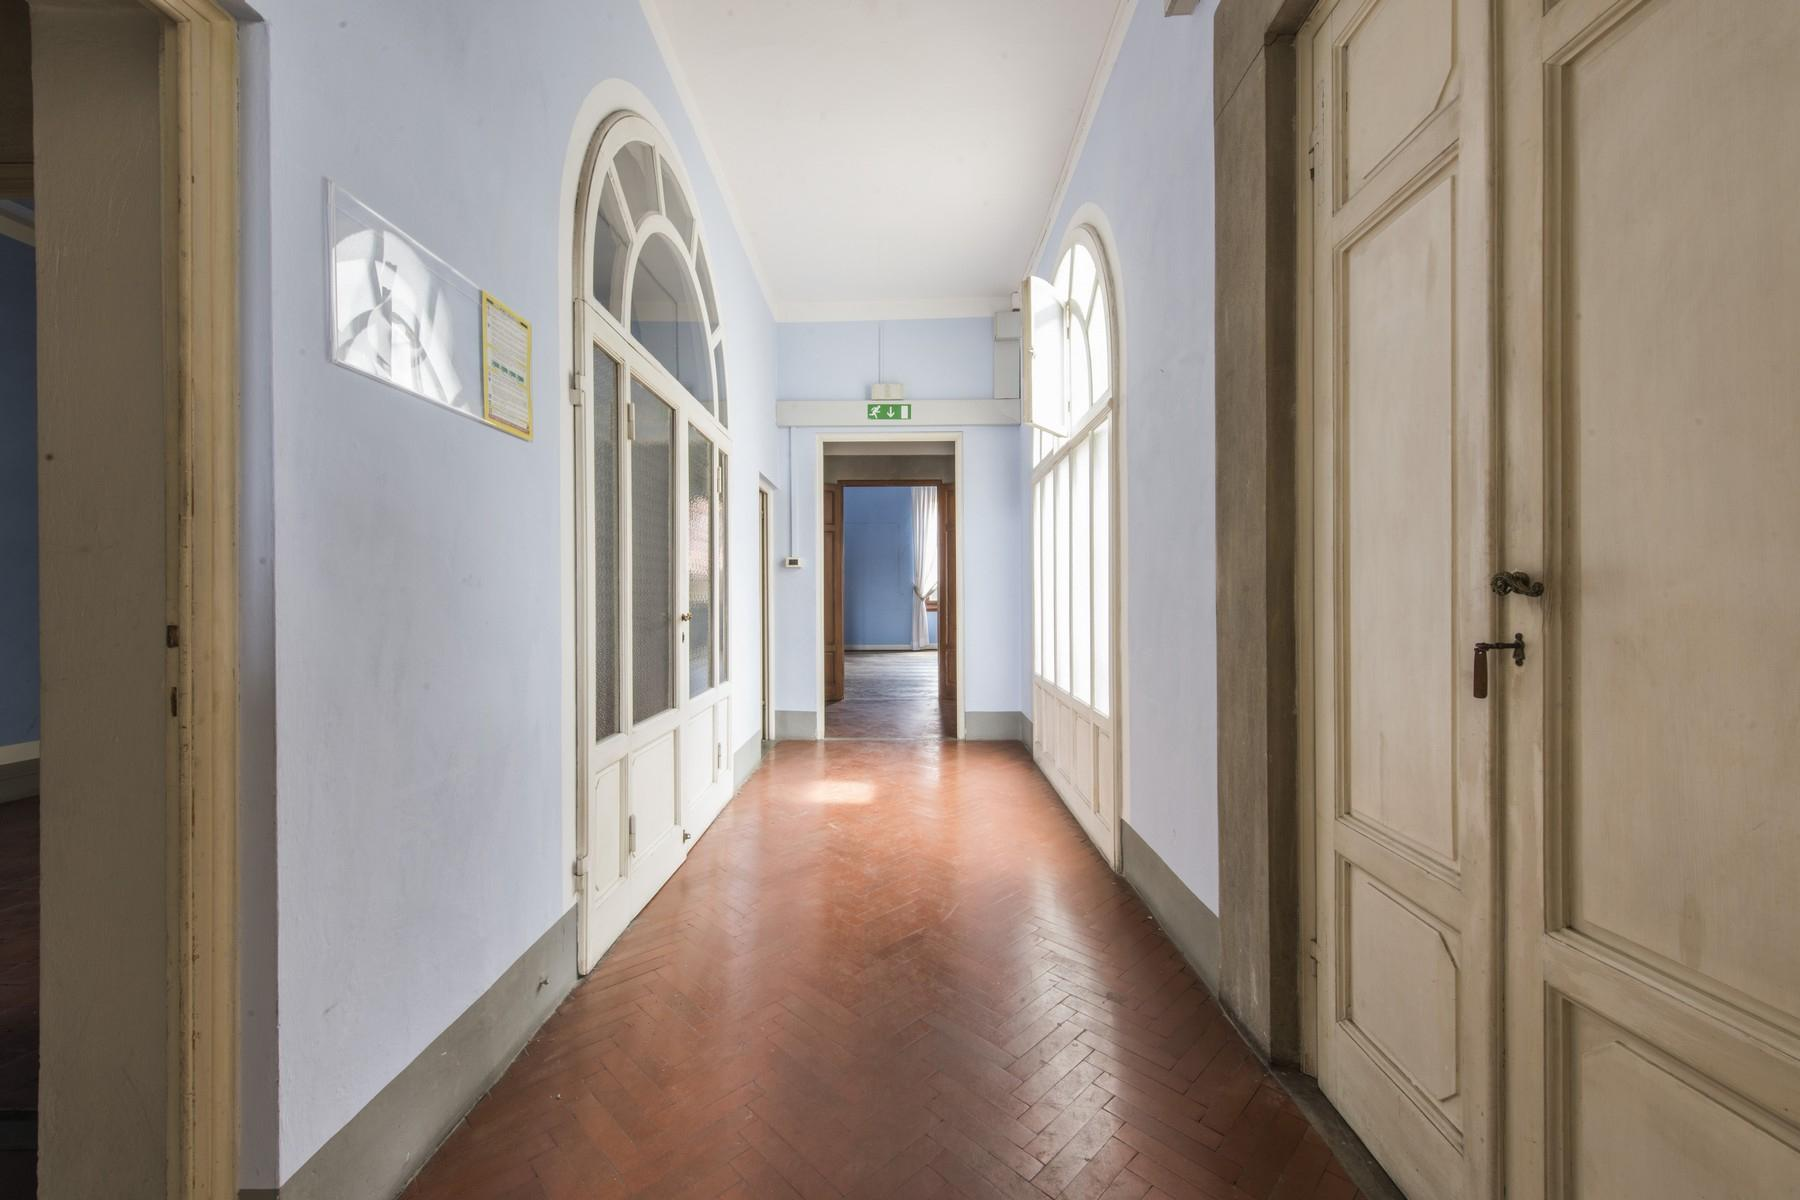 Magnificent 520sqm penthouse in a historic Florentine palazzo. - 20